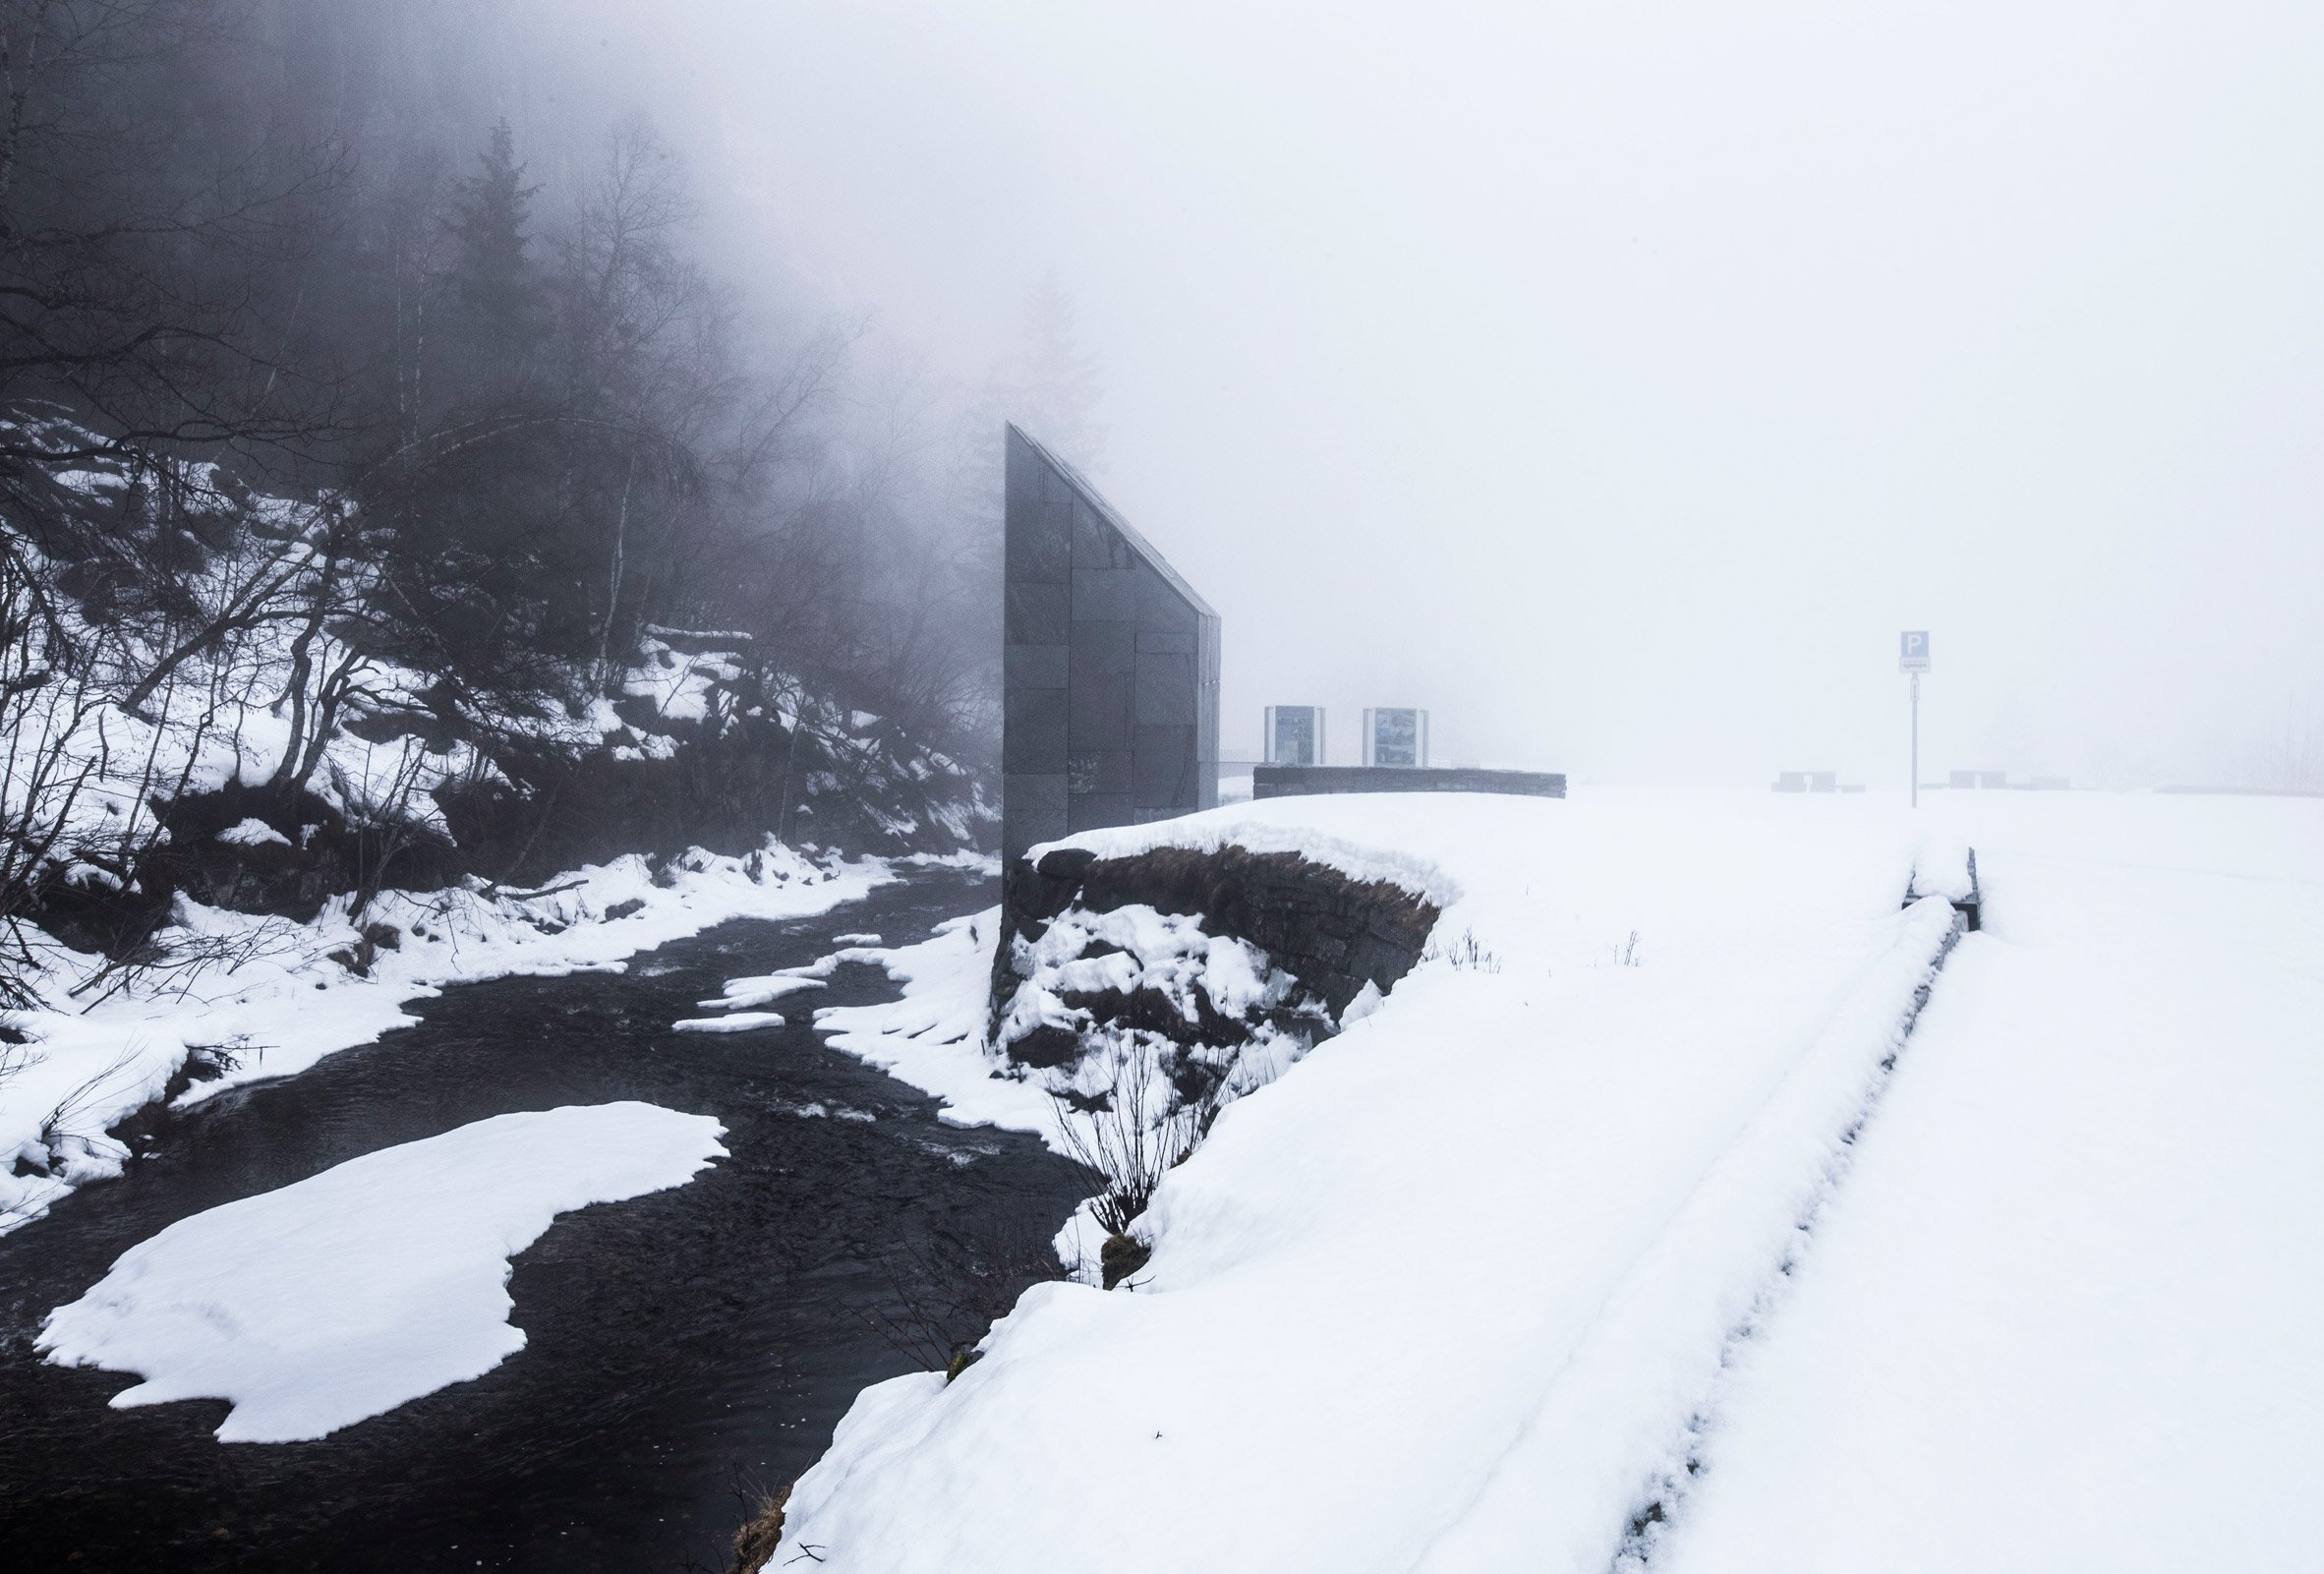 Fortunen completes toilet block with views of a Norwegian waterfall